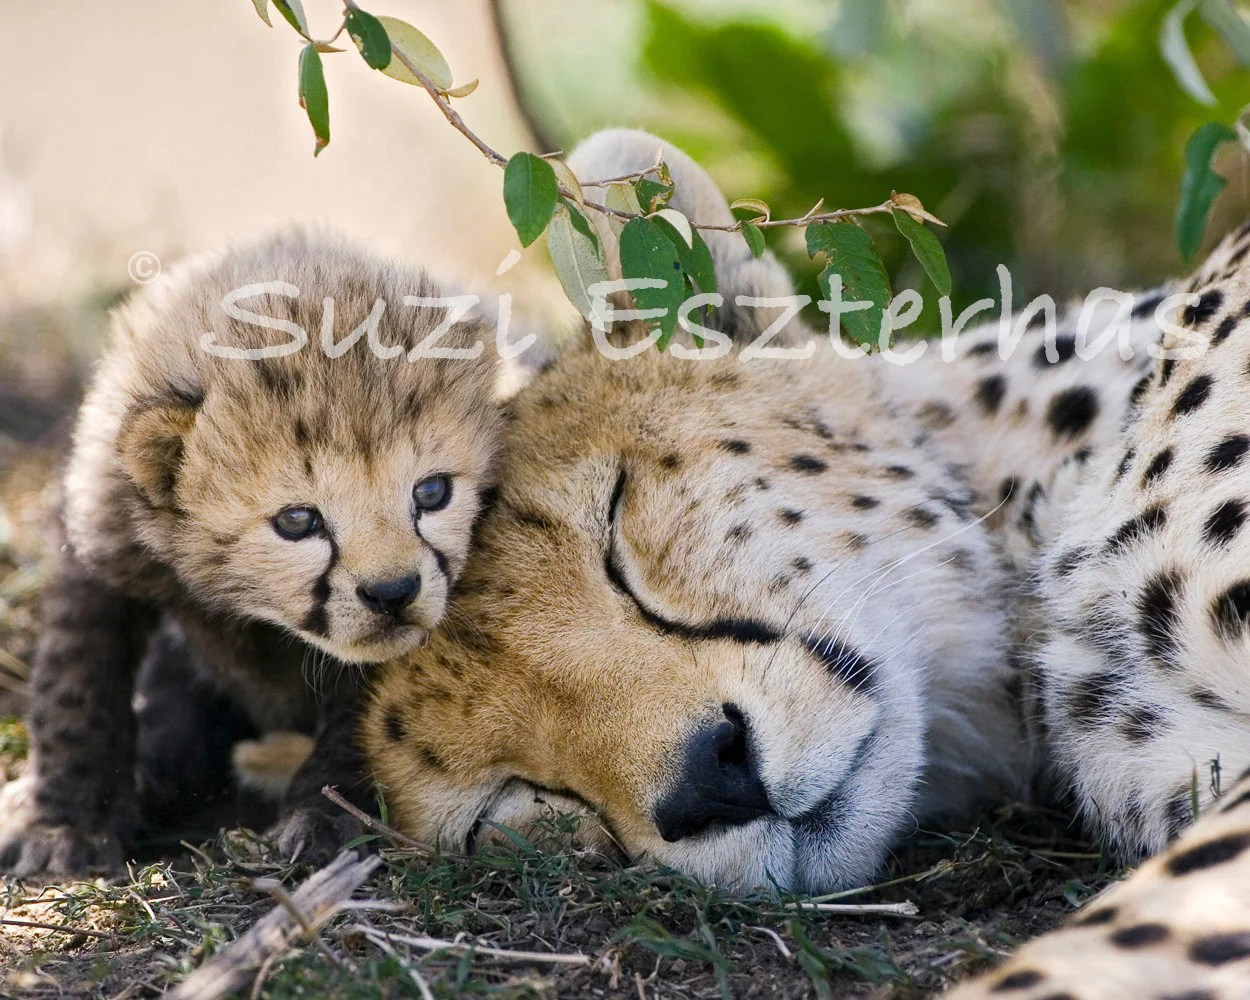 Baby Animal Photography Cheetah Baby With Mom Photo Print